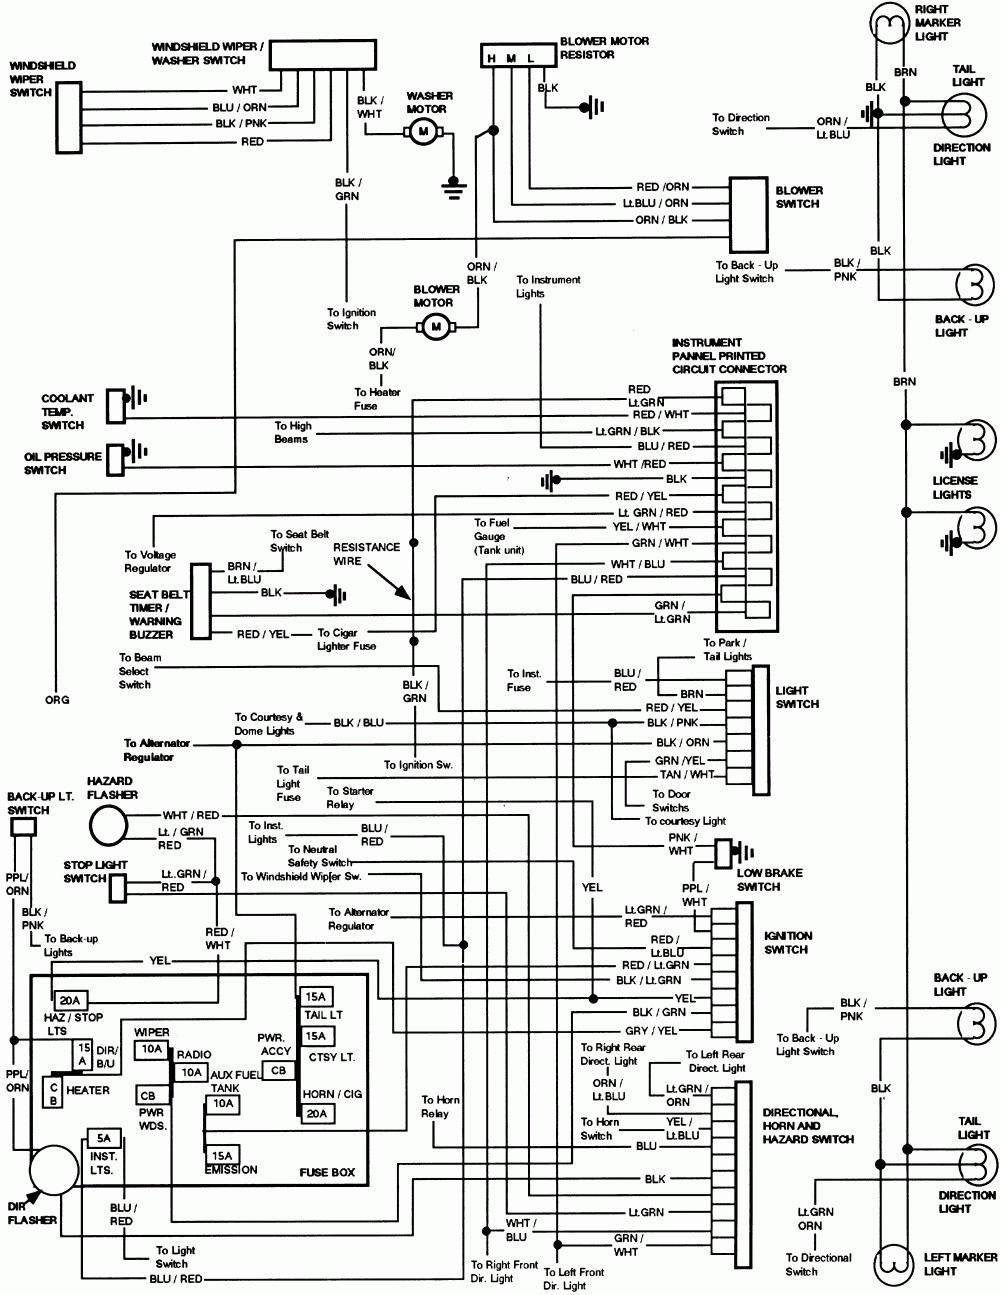 hight resolution of 1996 ford f150 wiring diagrams blog wiring diagram wiring diagram for 1996 ford f150 ecm